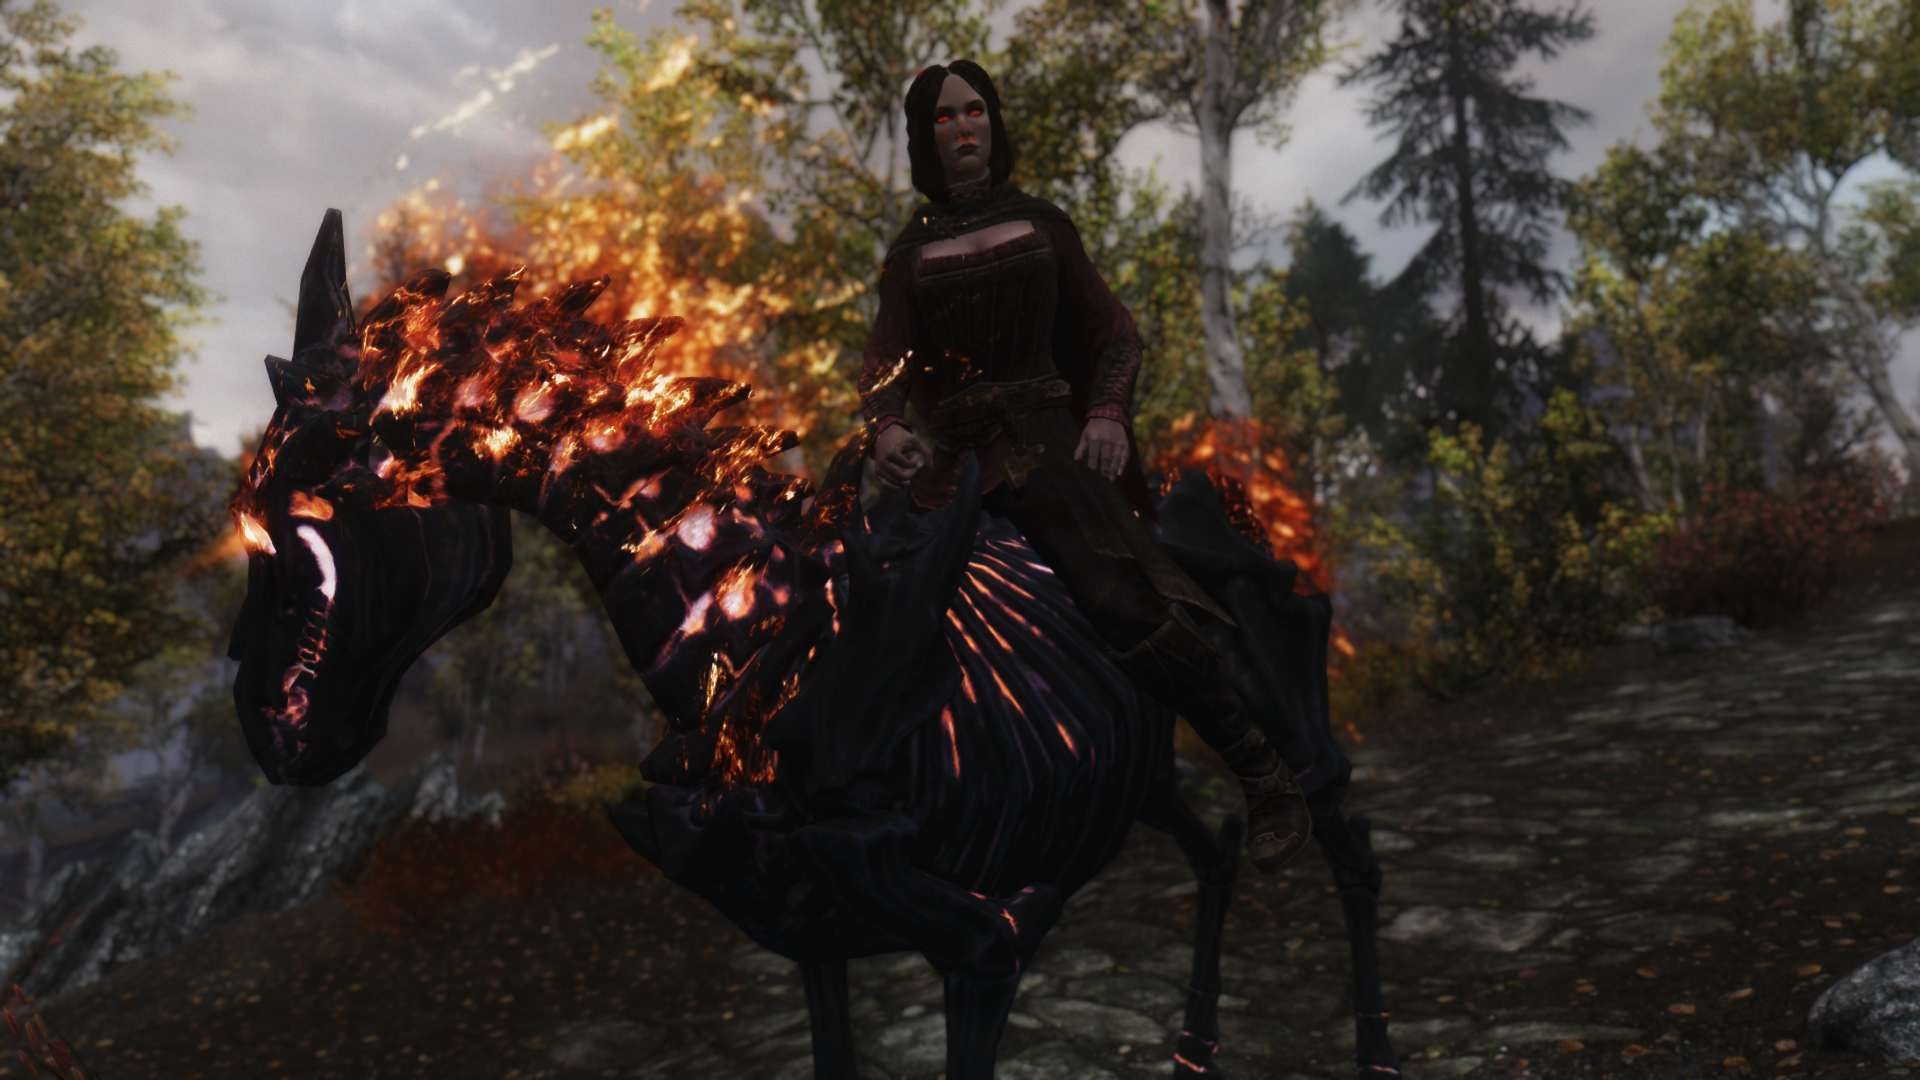 Skyrim Mods Horse For Followers - Pictures of Horses